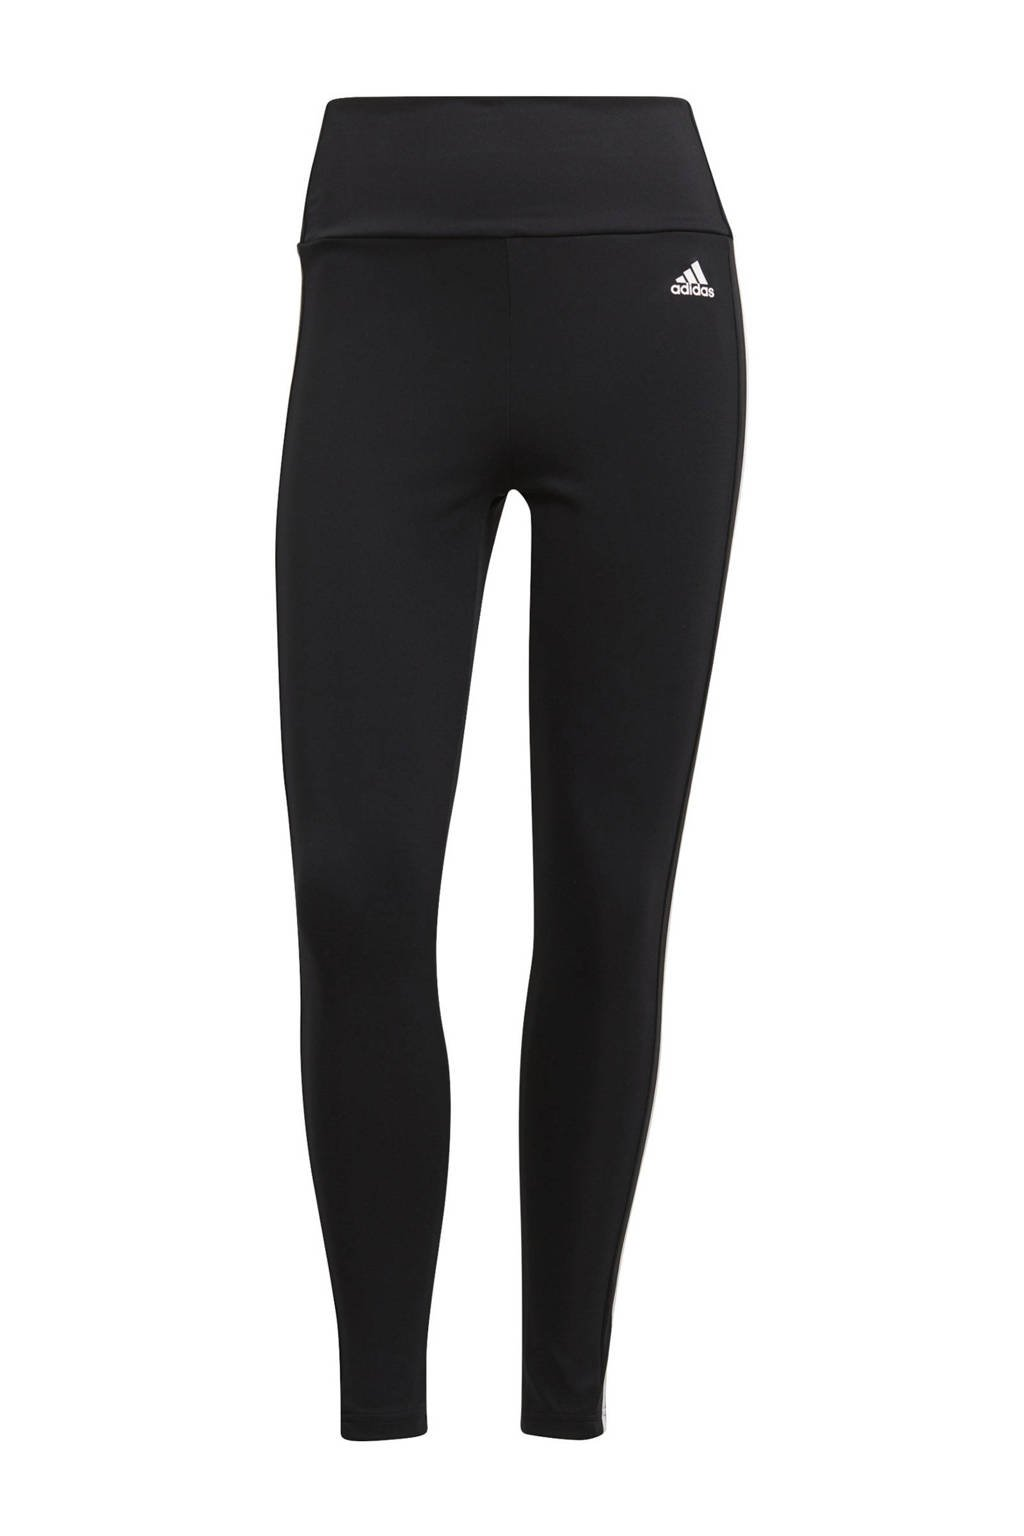 adidas Performance Designed2Move 7/8 sportlegging zwart/wit, Zwart/wit